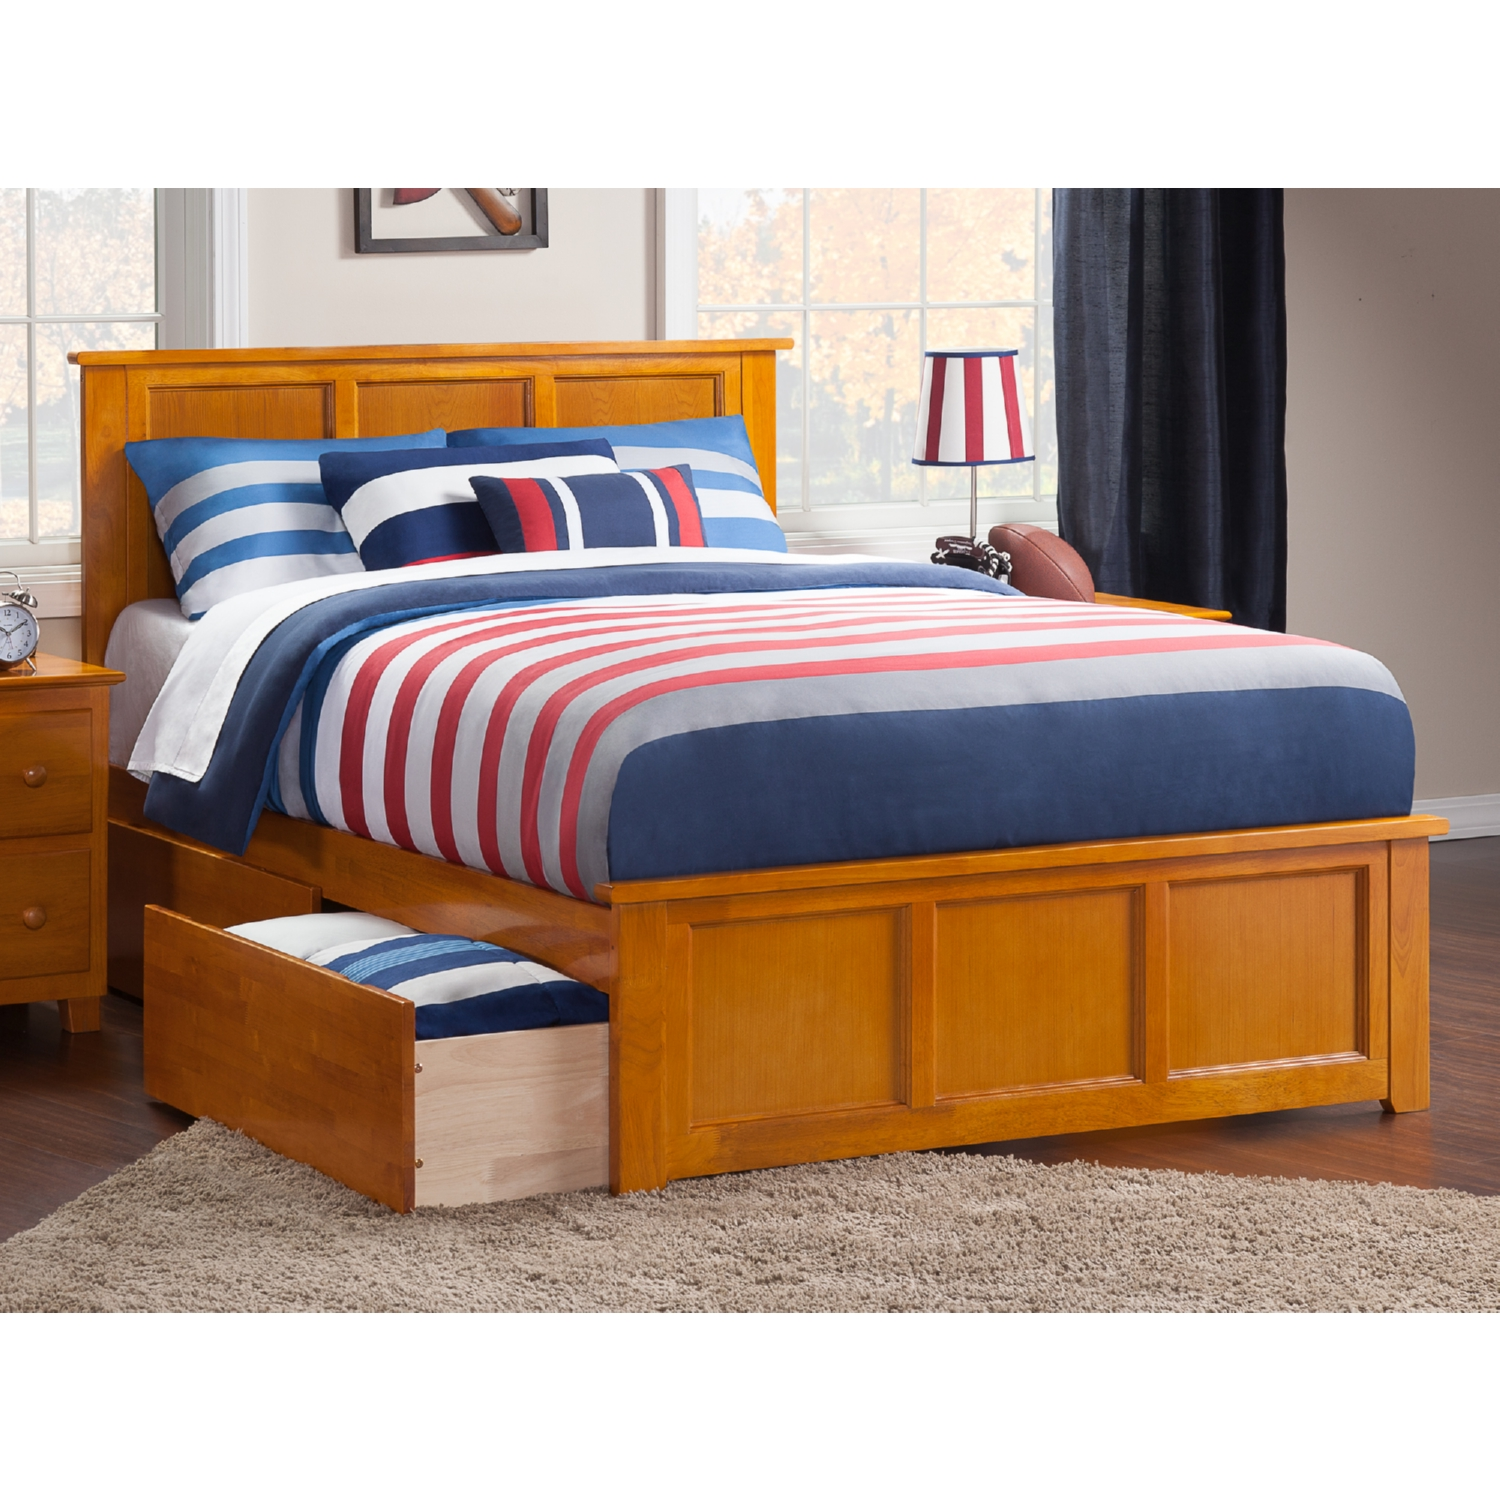 Atlantic Furniture Ar8636117 Madison Full Bed W Matching Footboard 2 Urban Bed Drawers In